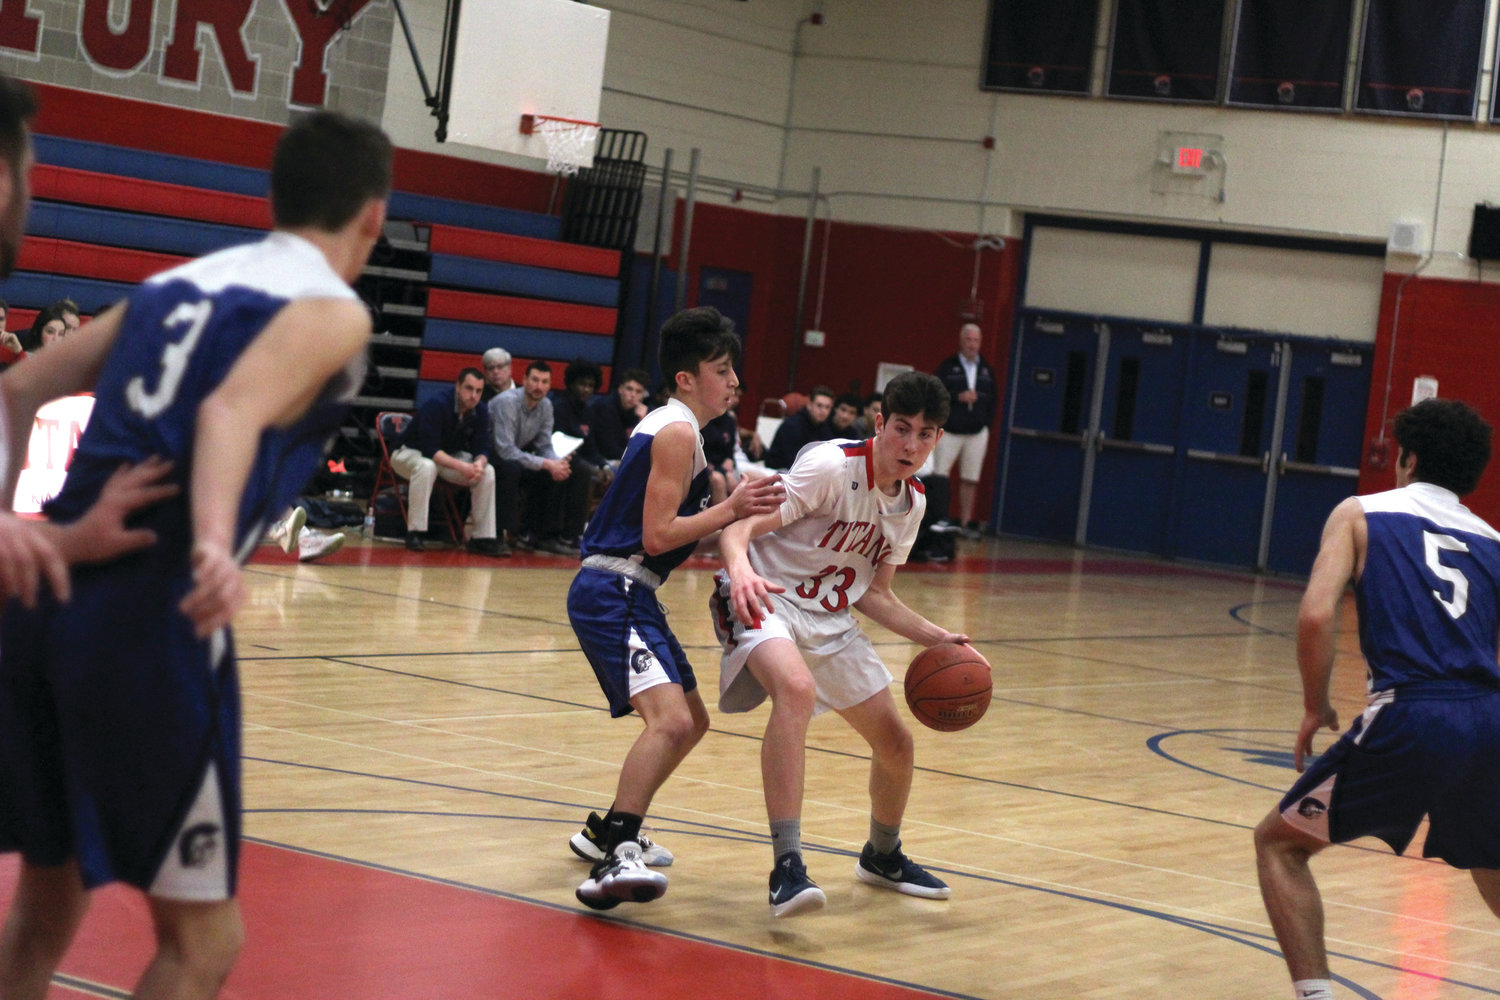 TO THE HOOP: Toll Gate's Liam Hart dribbles into the paint during the team's win over Scituate.